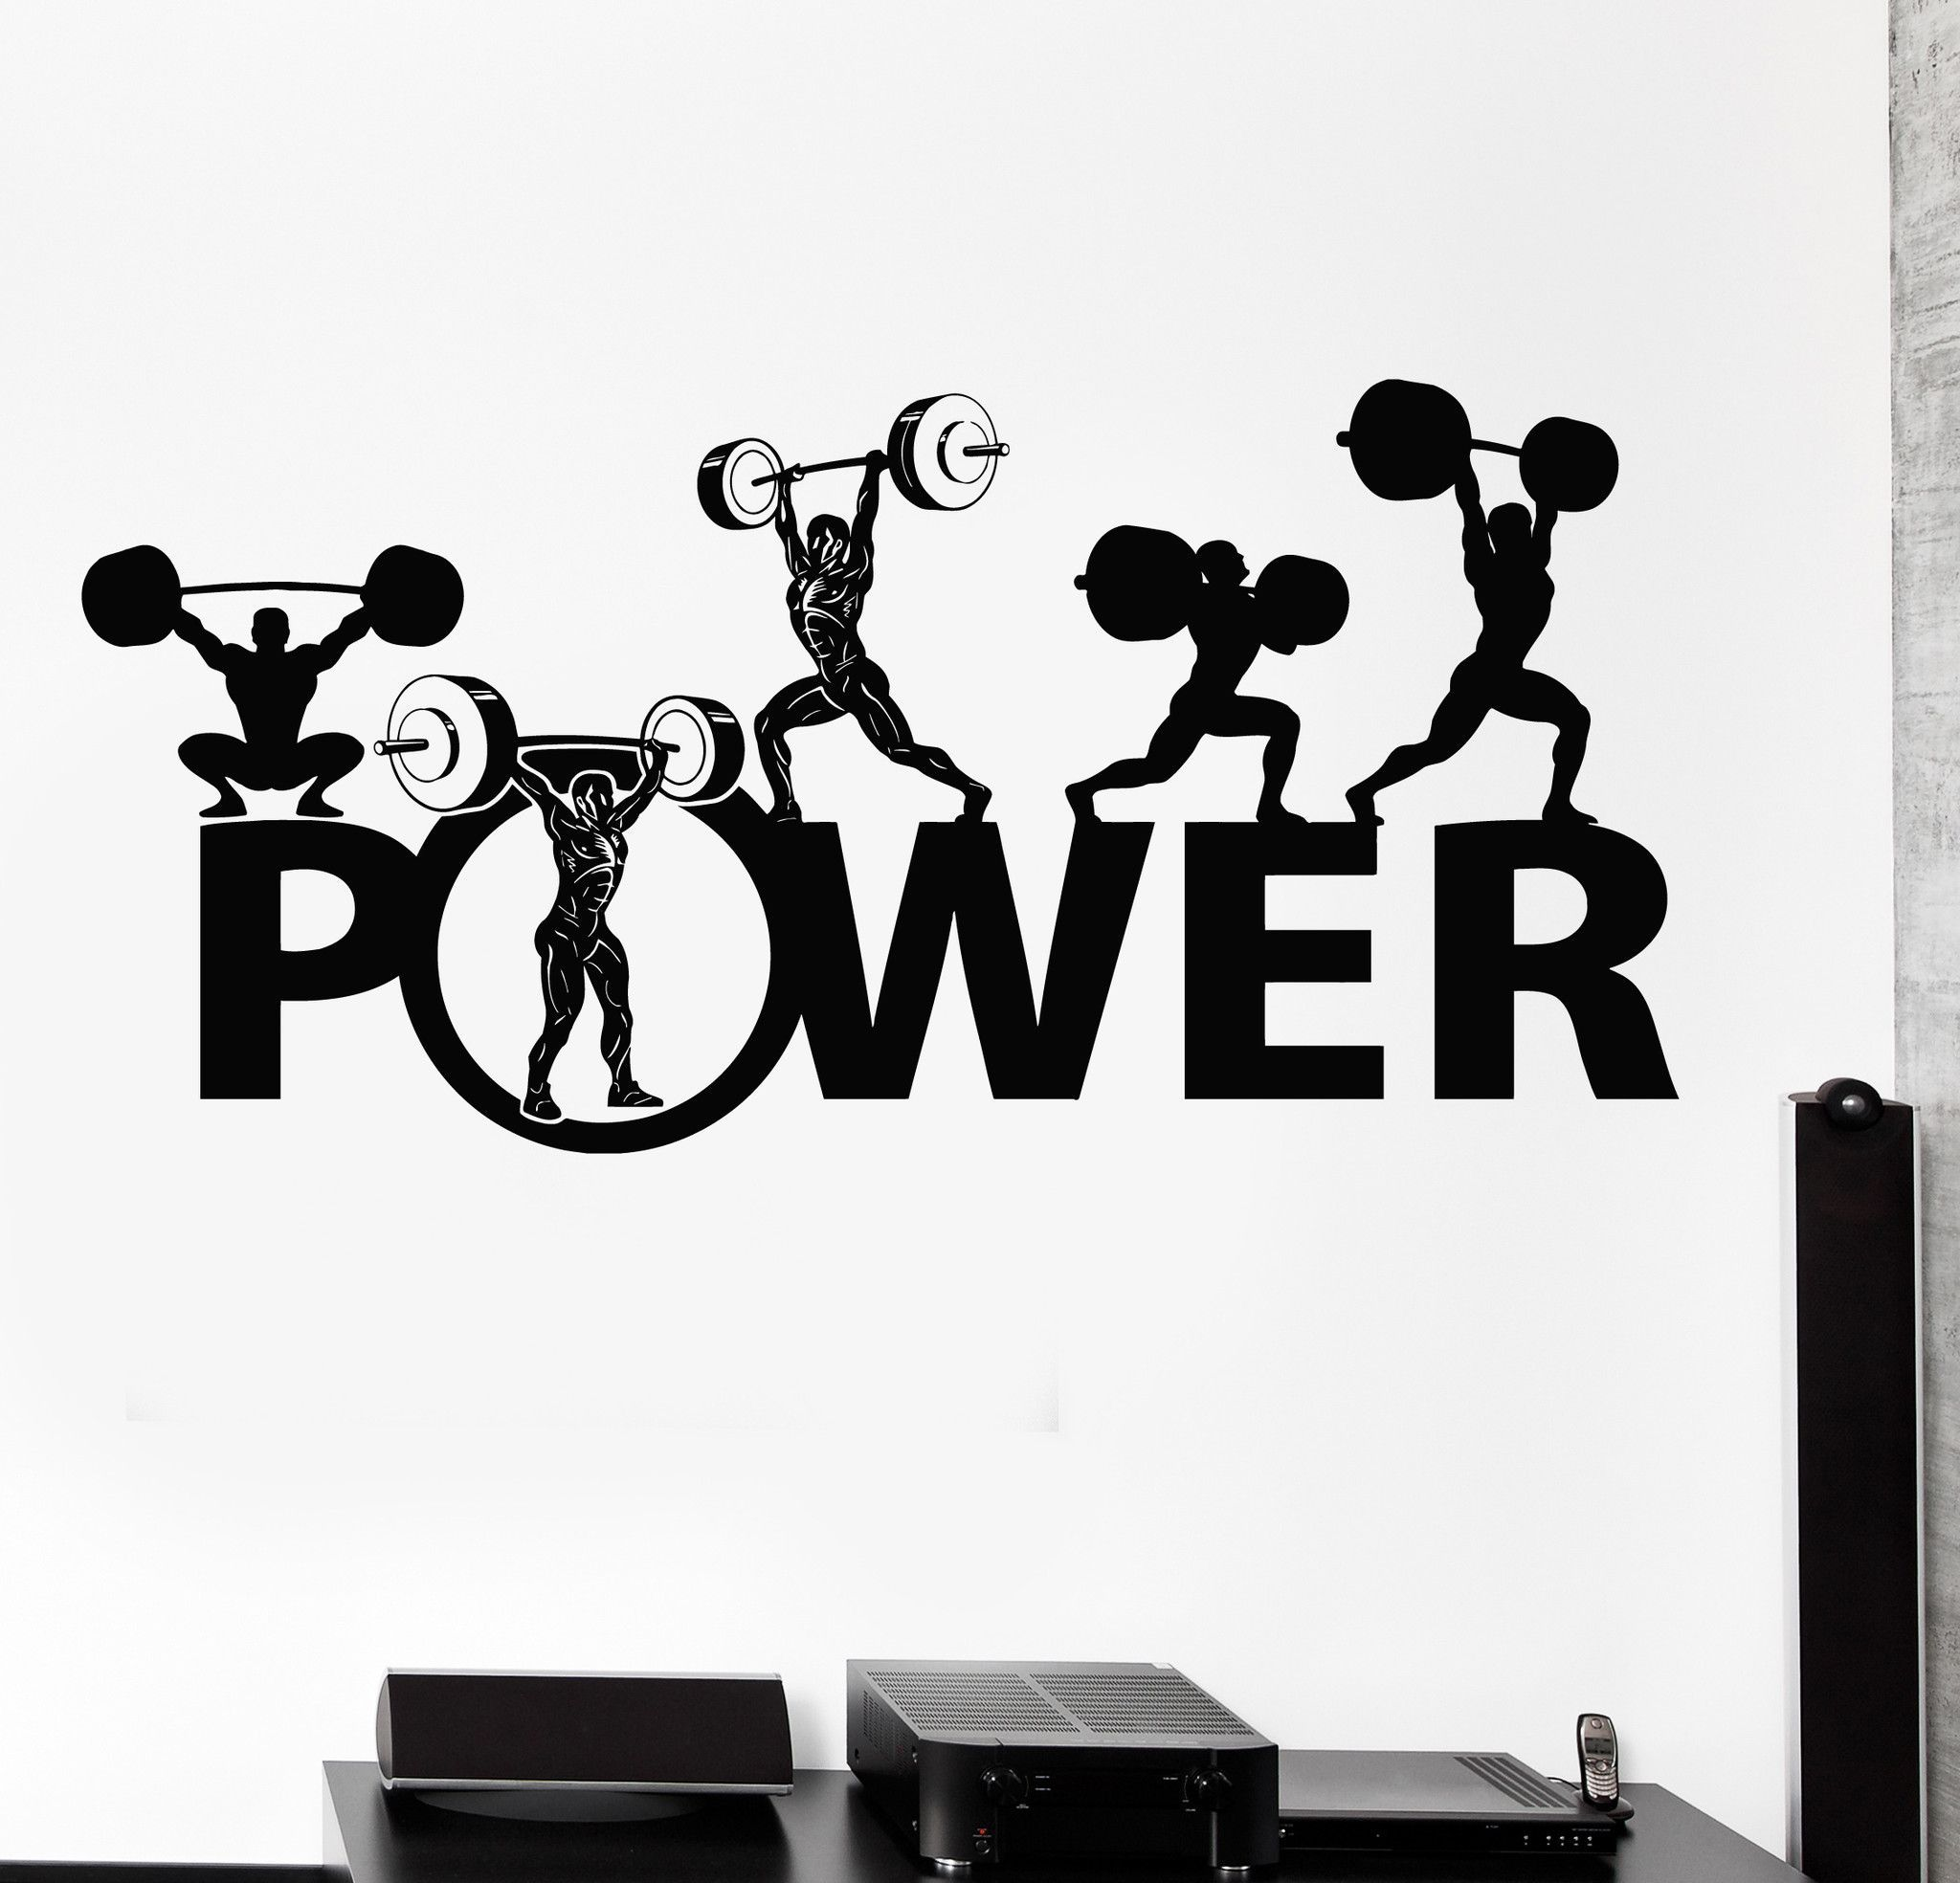 Wall Vinyl Decal Powerlifting Bodybuilding Sport Barbell Home Interior Decor Unique Gift Z